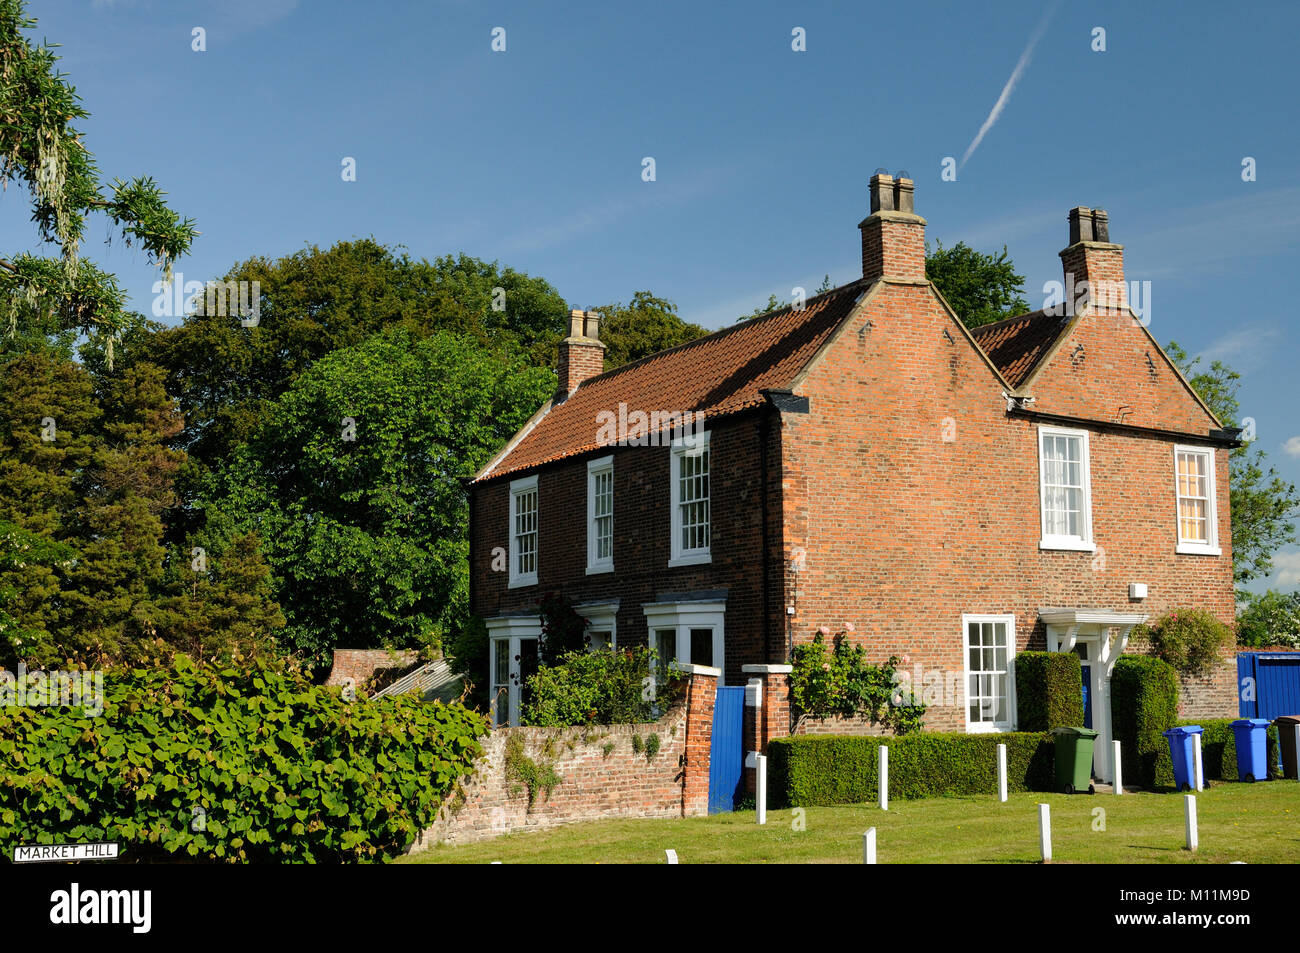 Ivy House, a grade II listed building, in Hedon, East Yorkshire, England Stock Photo